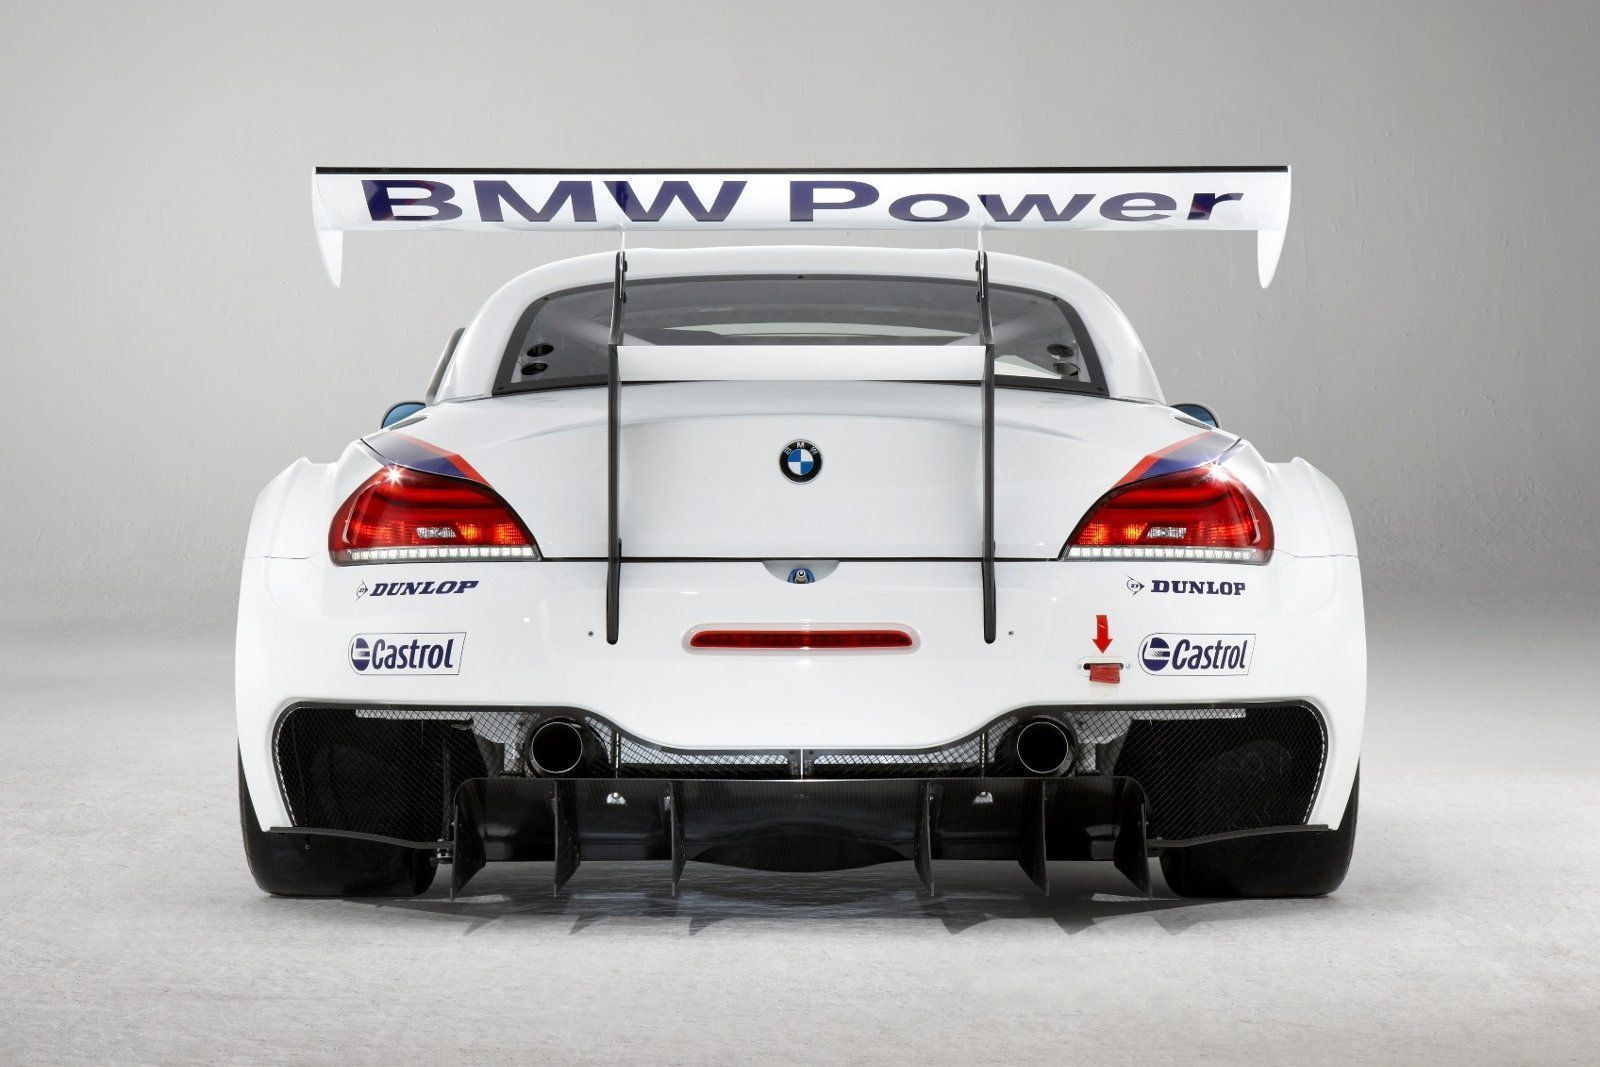 Bmw Z4 Gt3 Race Car Bmw Photo 11054725 Fanpop